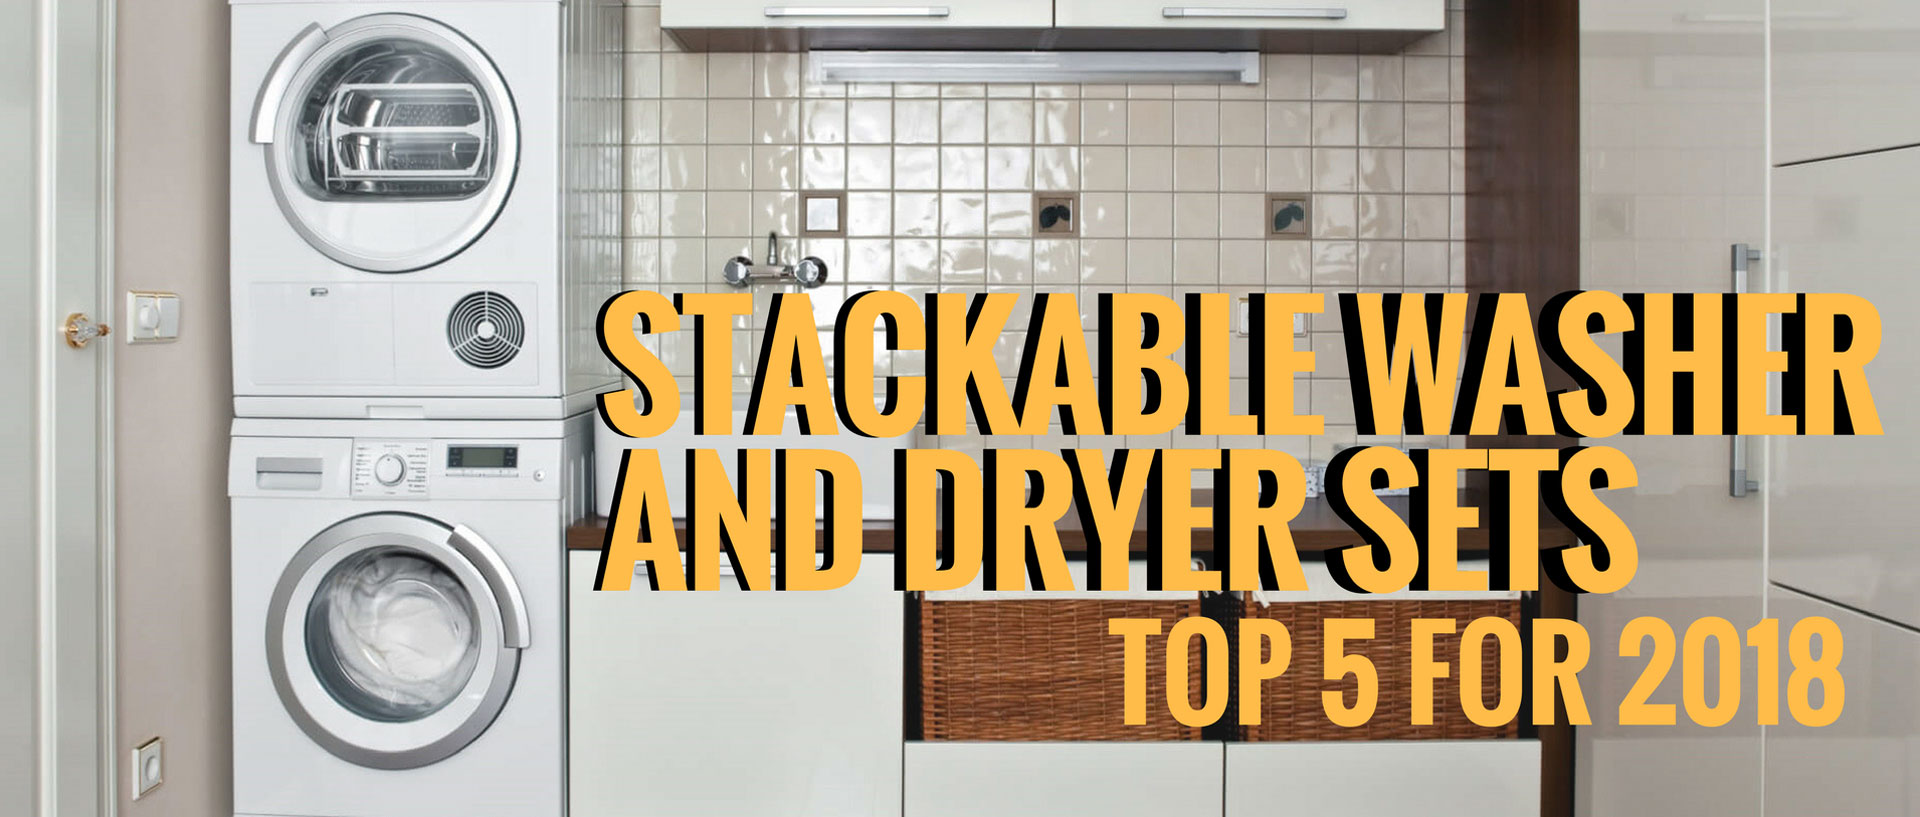 Stackable Washer And Dryer Sets Top 5 For 2018